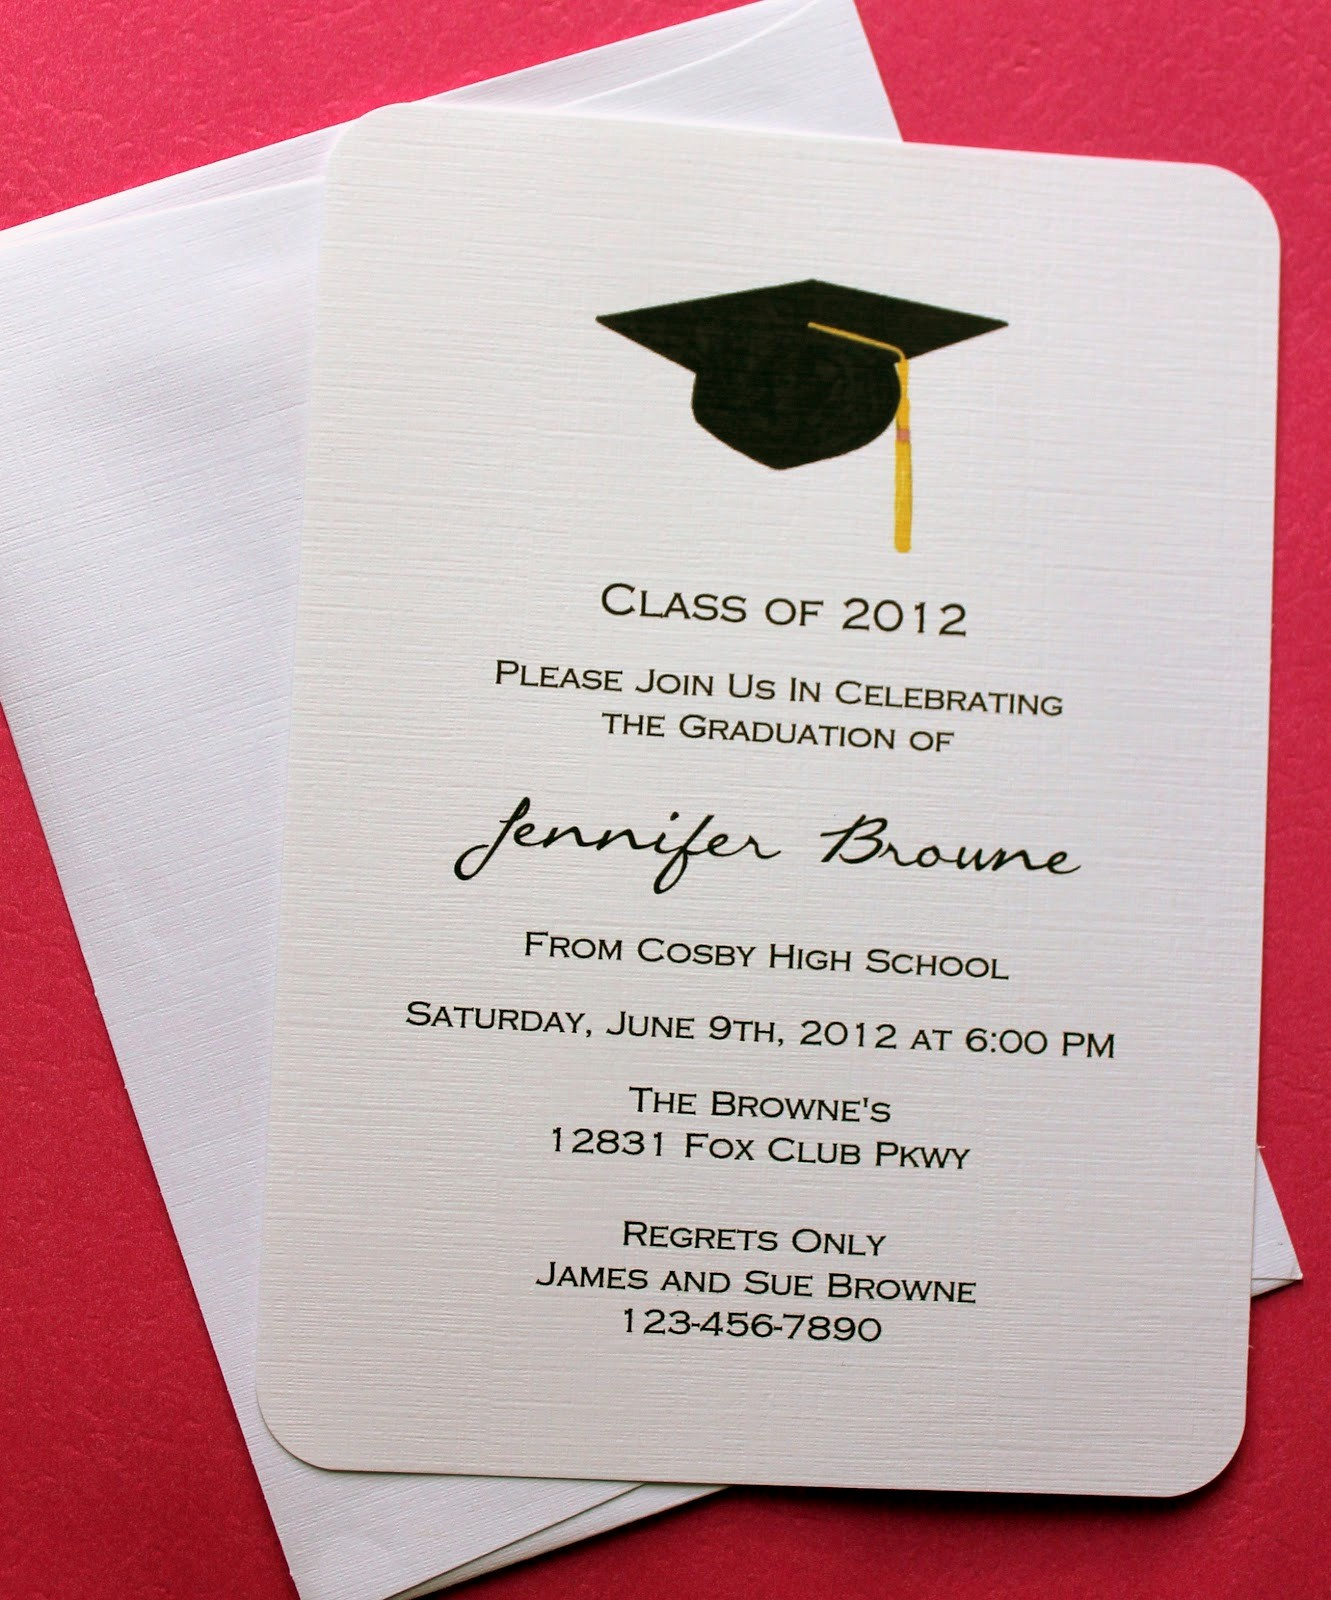 Graduation Party Invitation Template Word Luxury Graduation Party Invitation Templates Microsoft Word